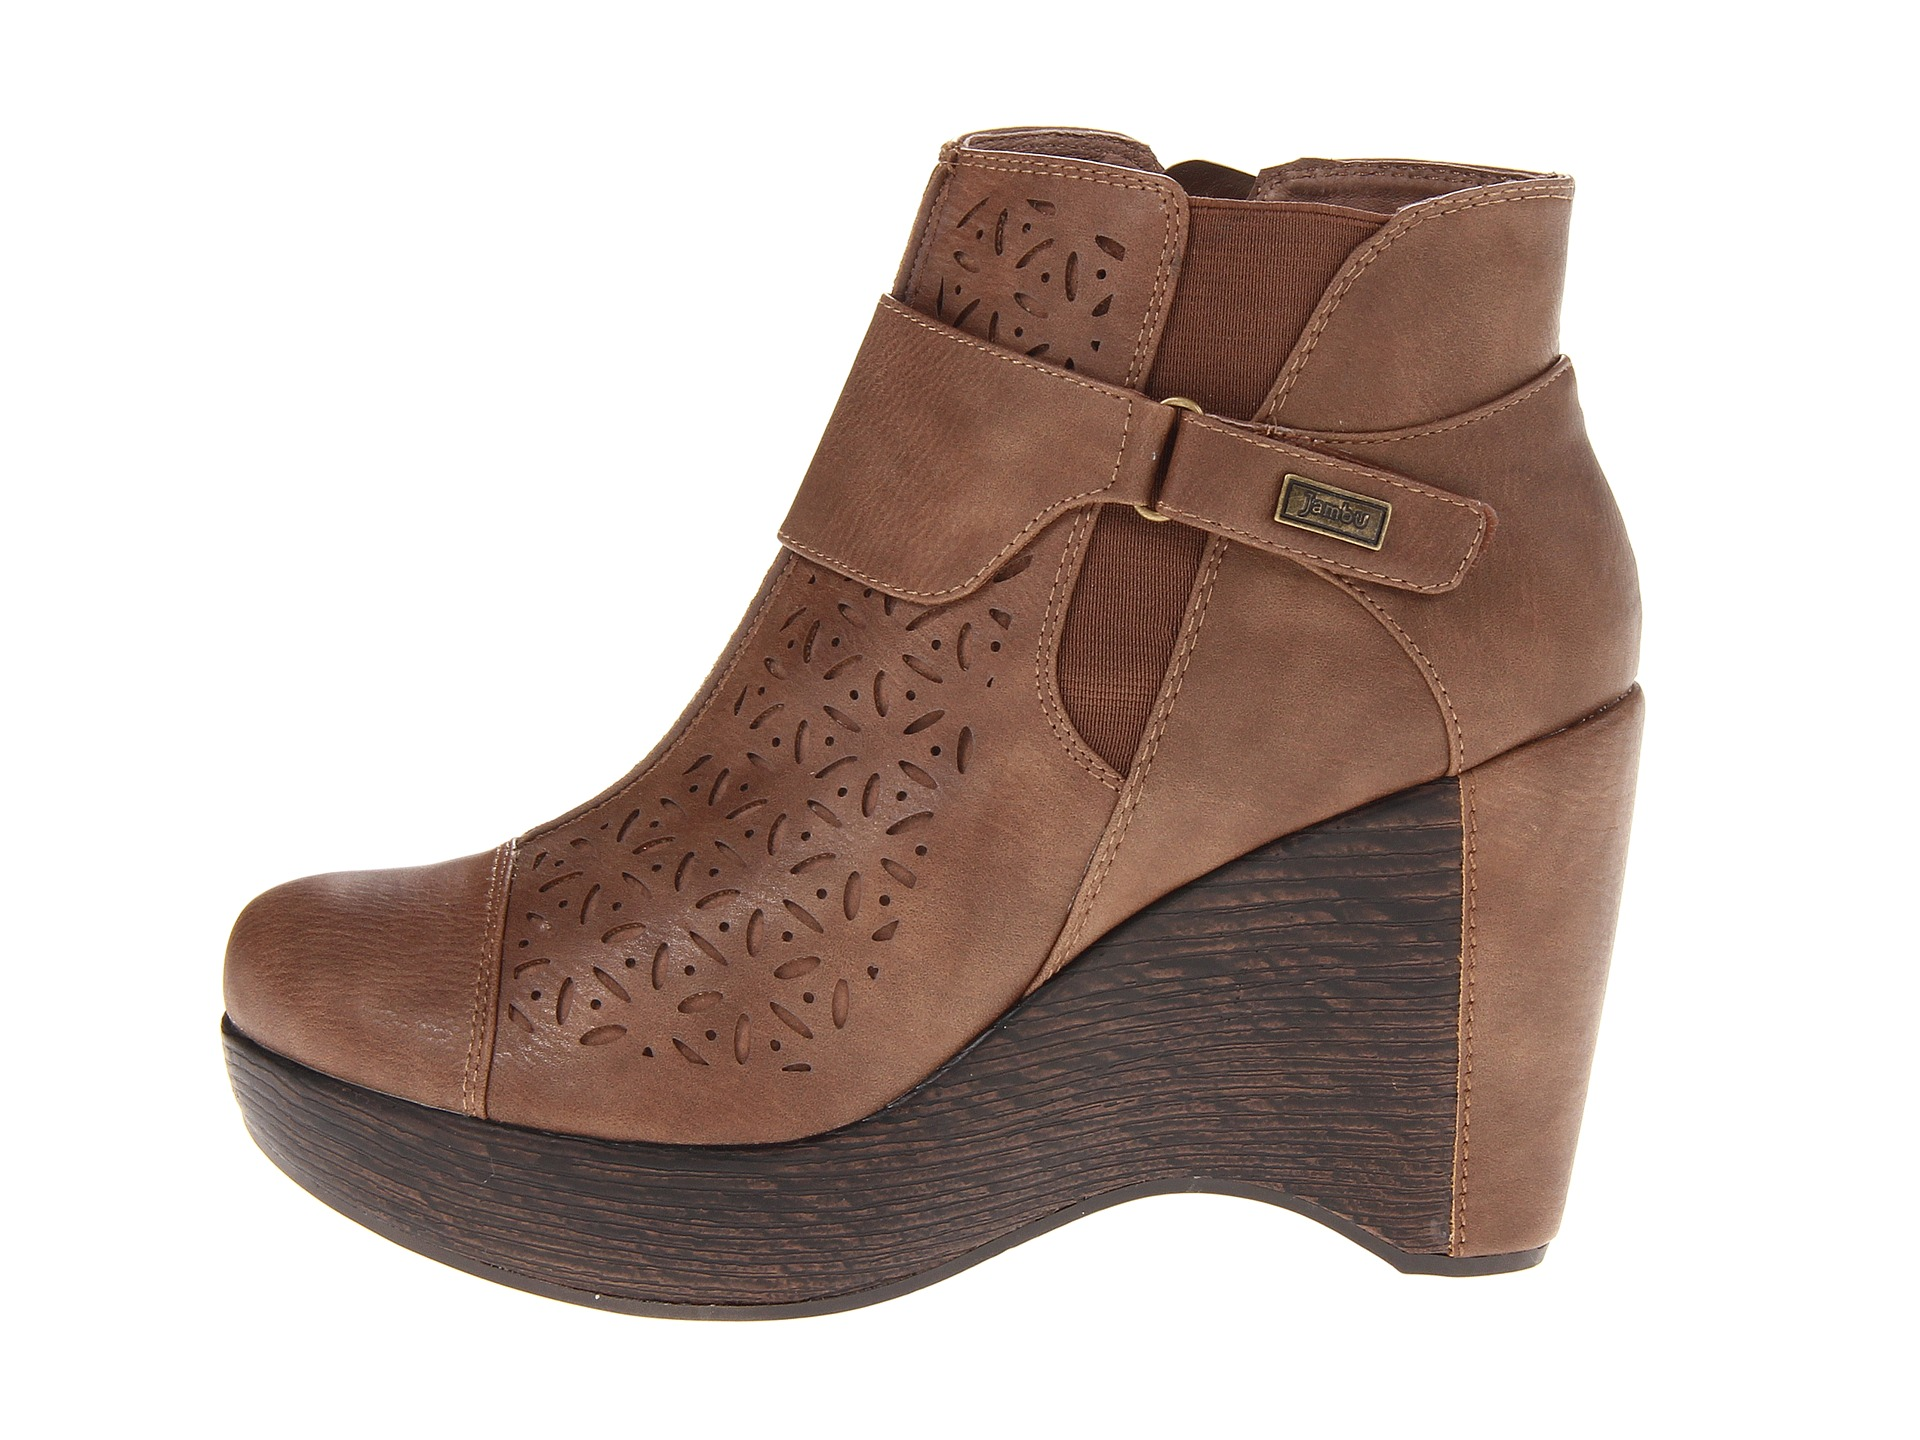 Crocs Sandals Women  Shipped Free at Zappos